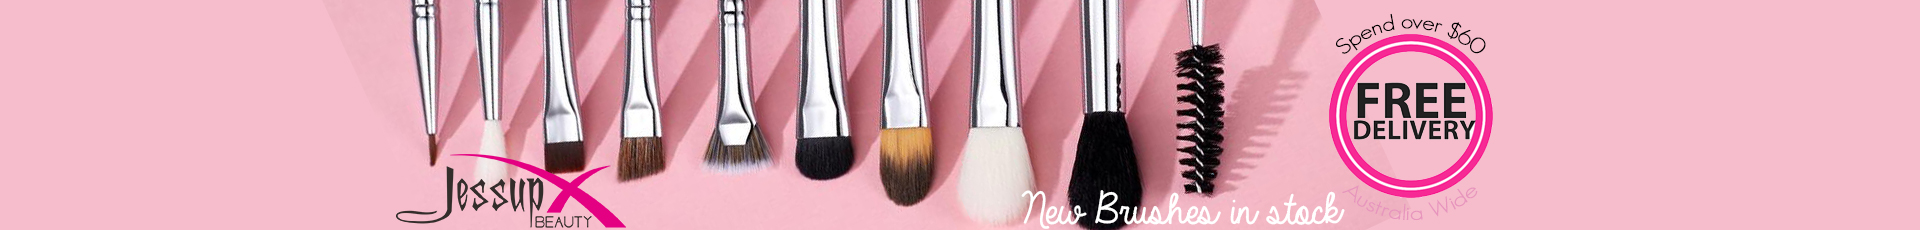 Free shipping over $60 Australia wide